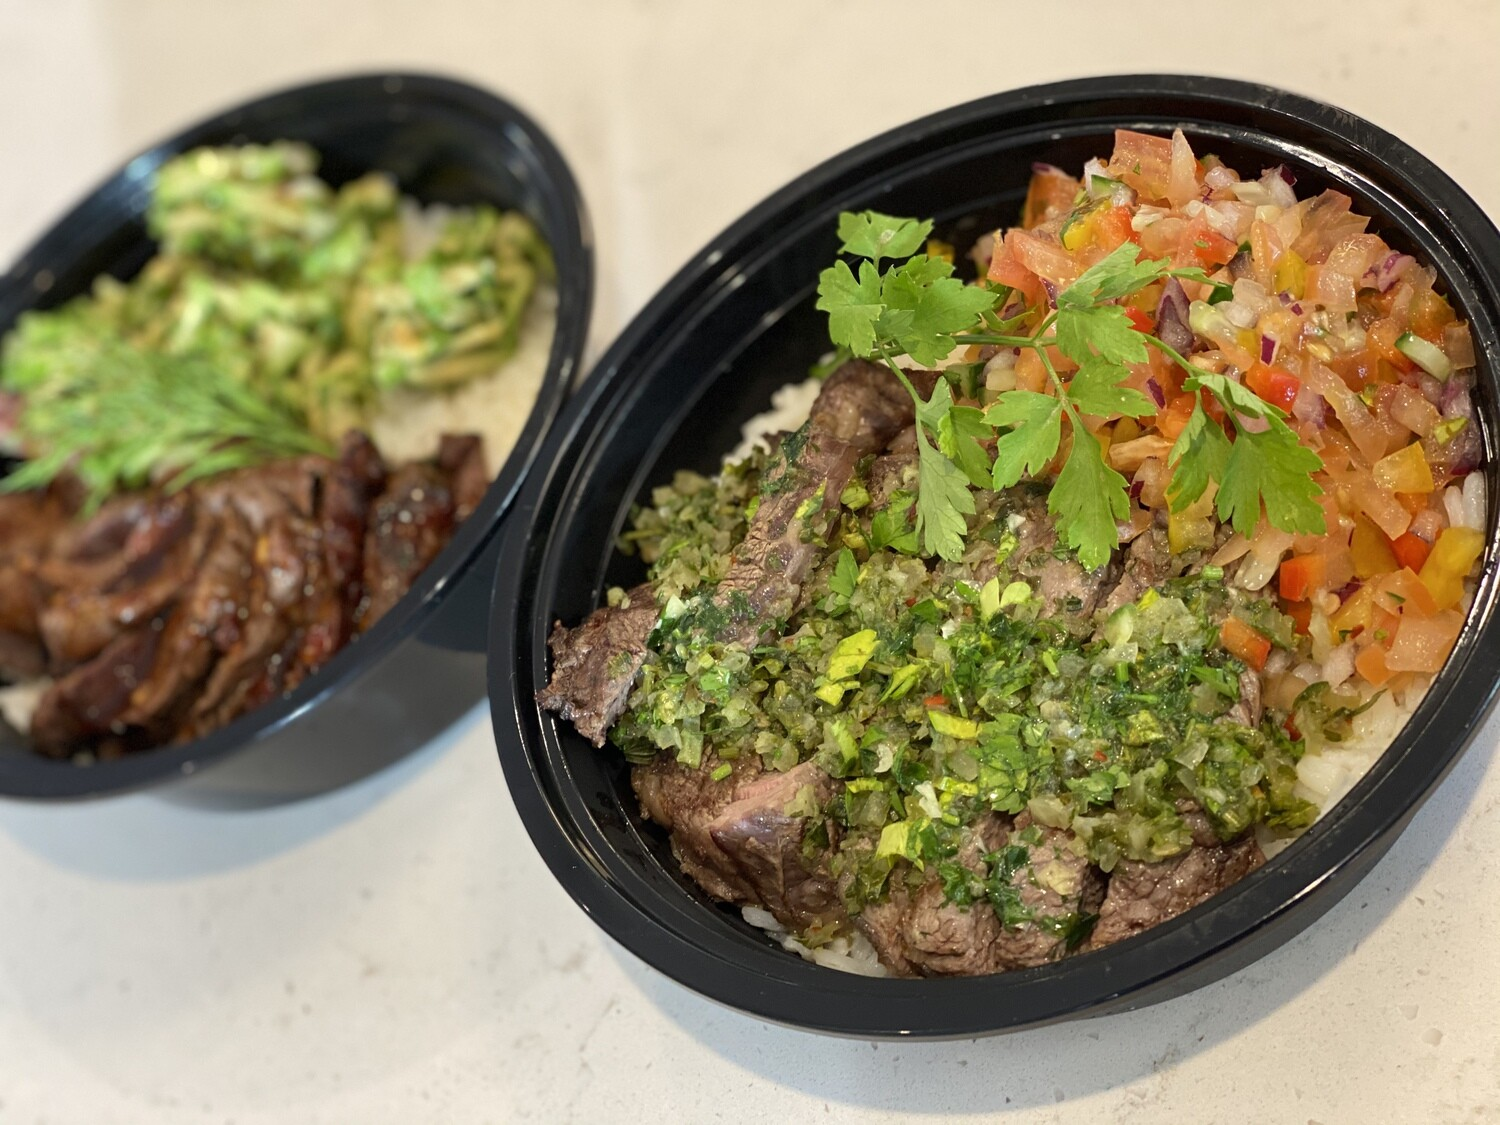 *COMBO* Budweiser Lager AND Meal-in-a-Bowl Chimichurri Steak